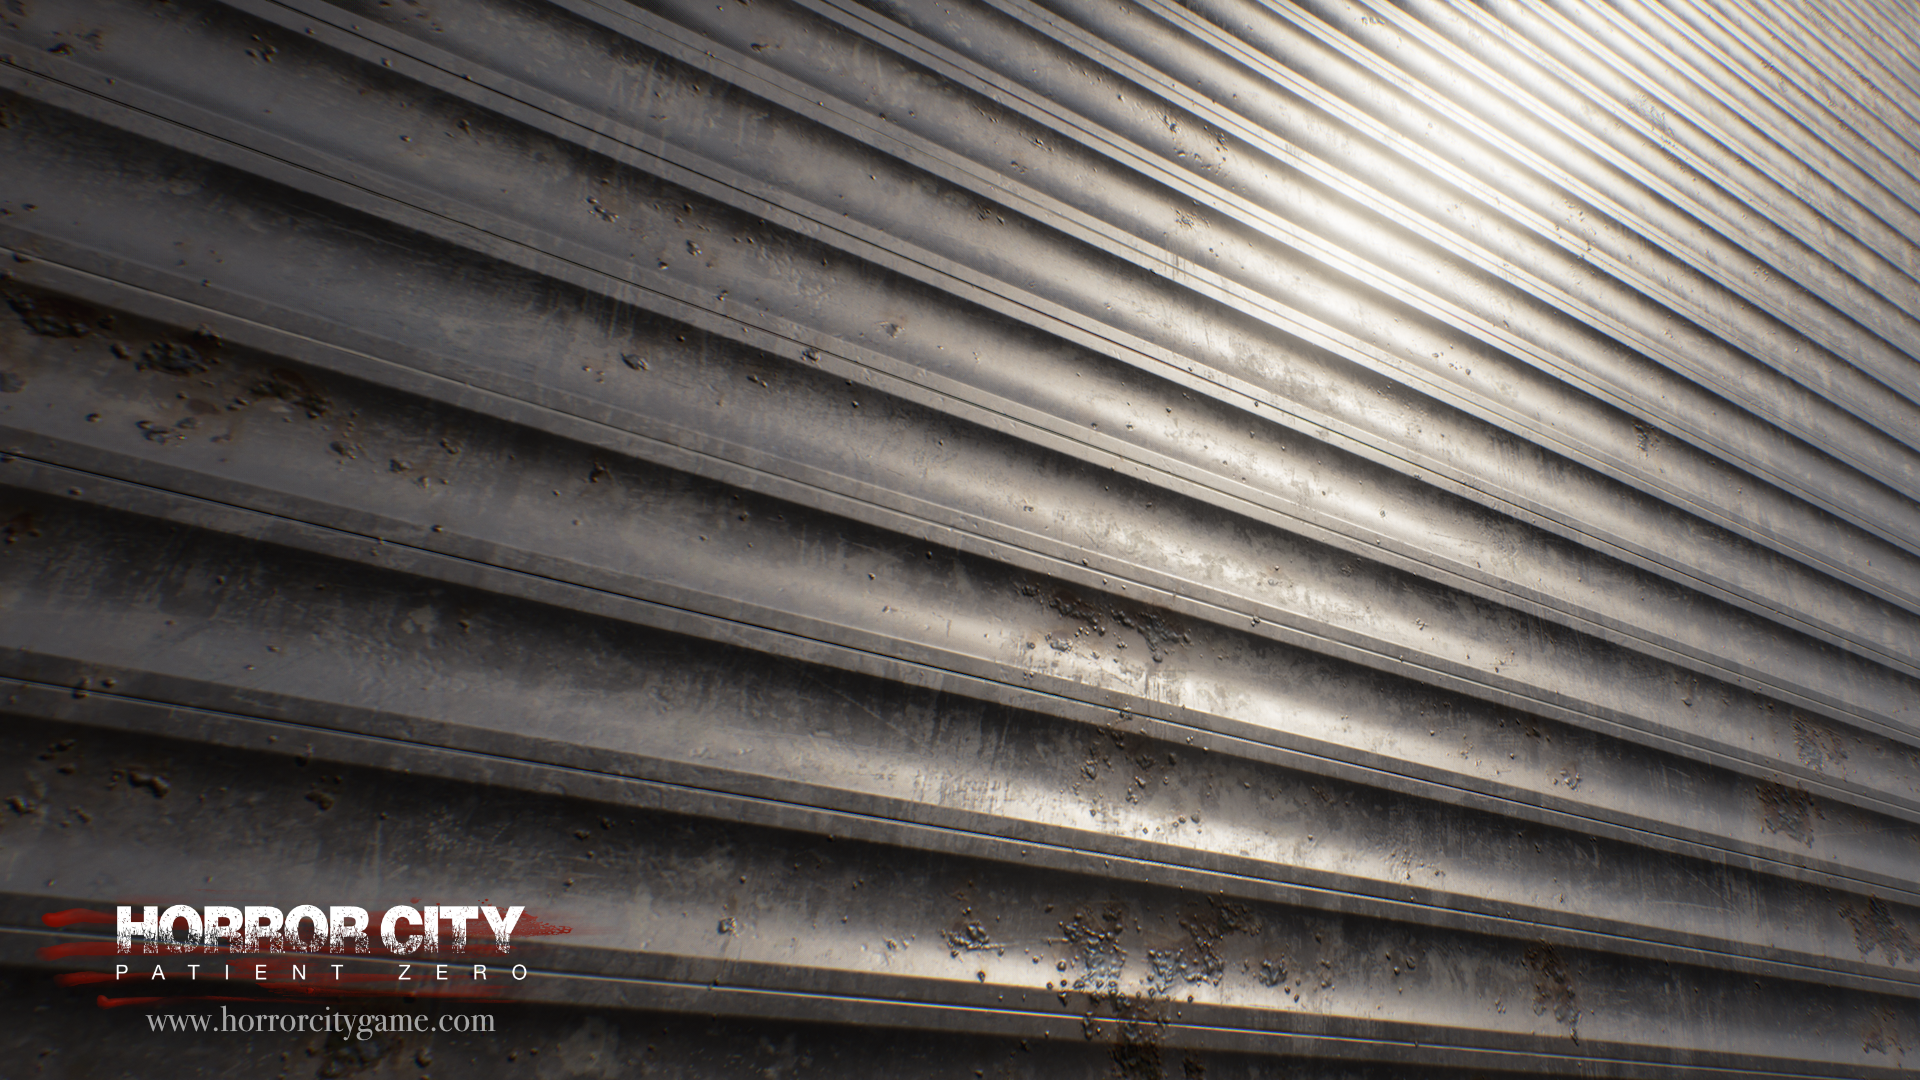 Store shutter textures done with Substance Designer, rendered in UE4